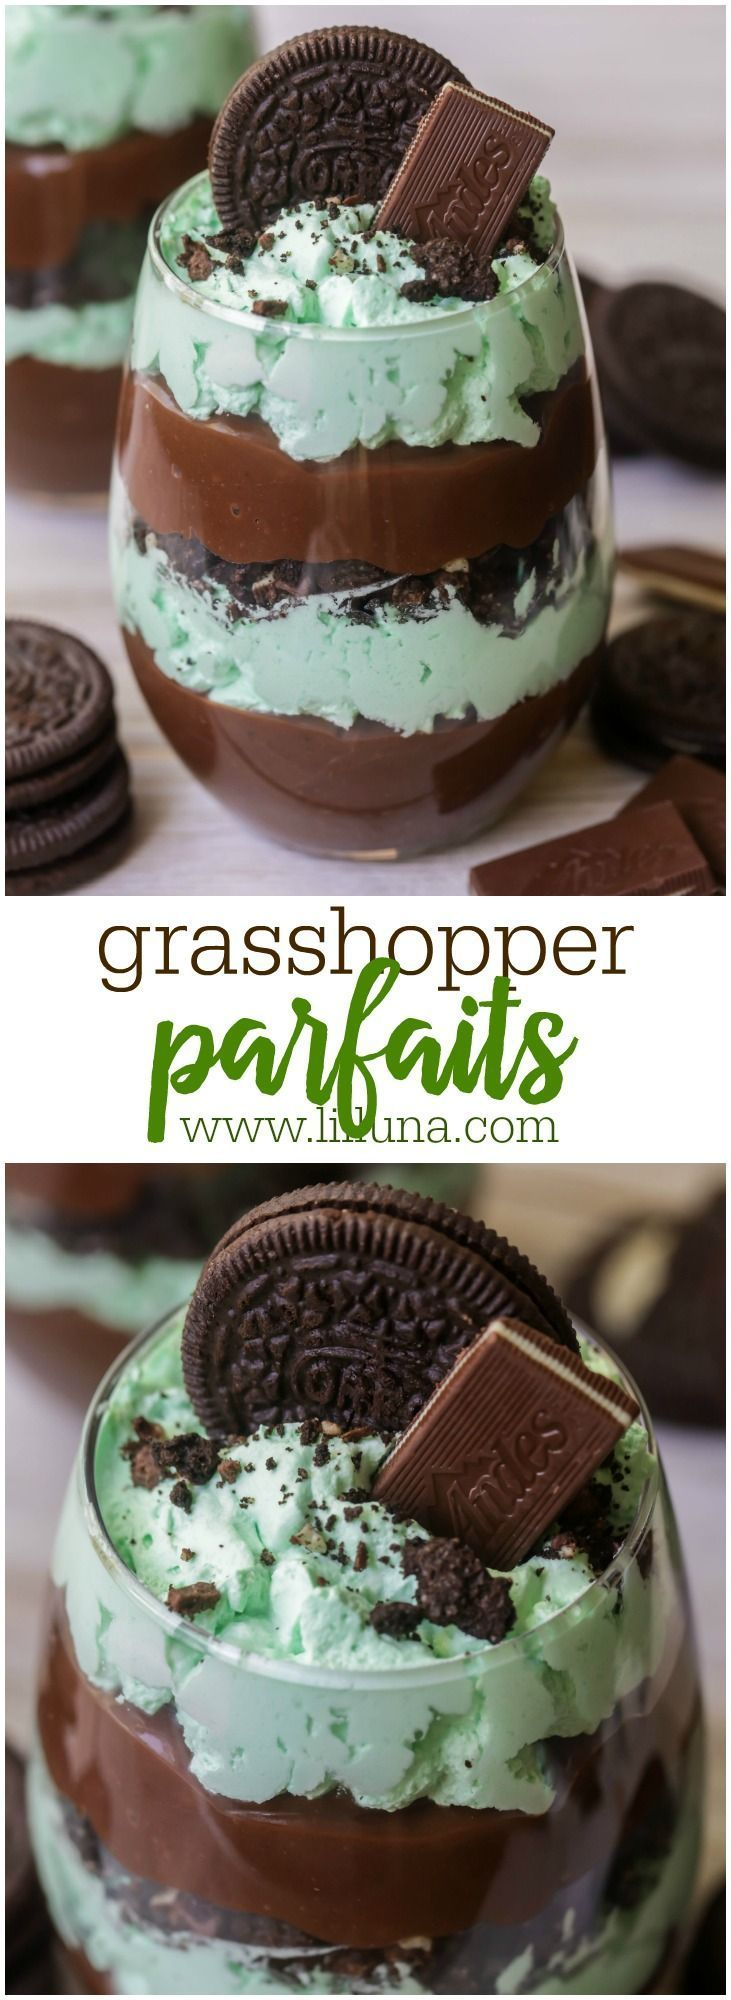 Grasshopper Parfaits - layers of chocolate pudding, mint whipped cream, Crushed Oreos and Andes chocolates!